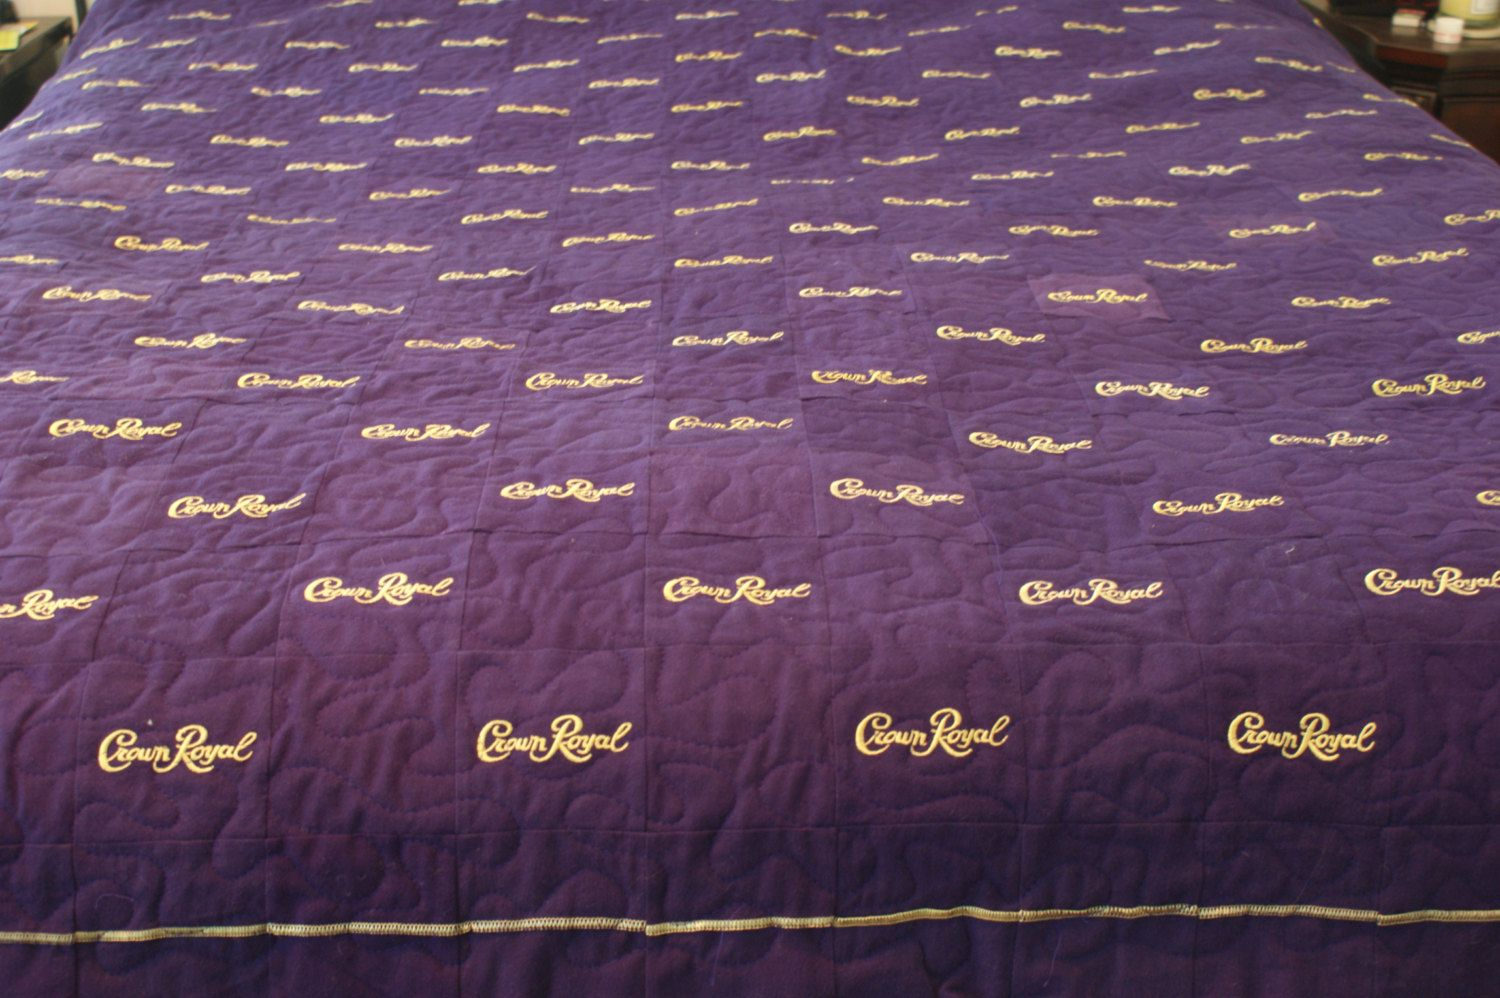 Man Cave Quilt Pattern : Crown royal quilt custom made to order man cave